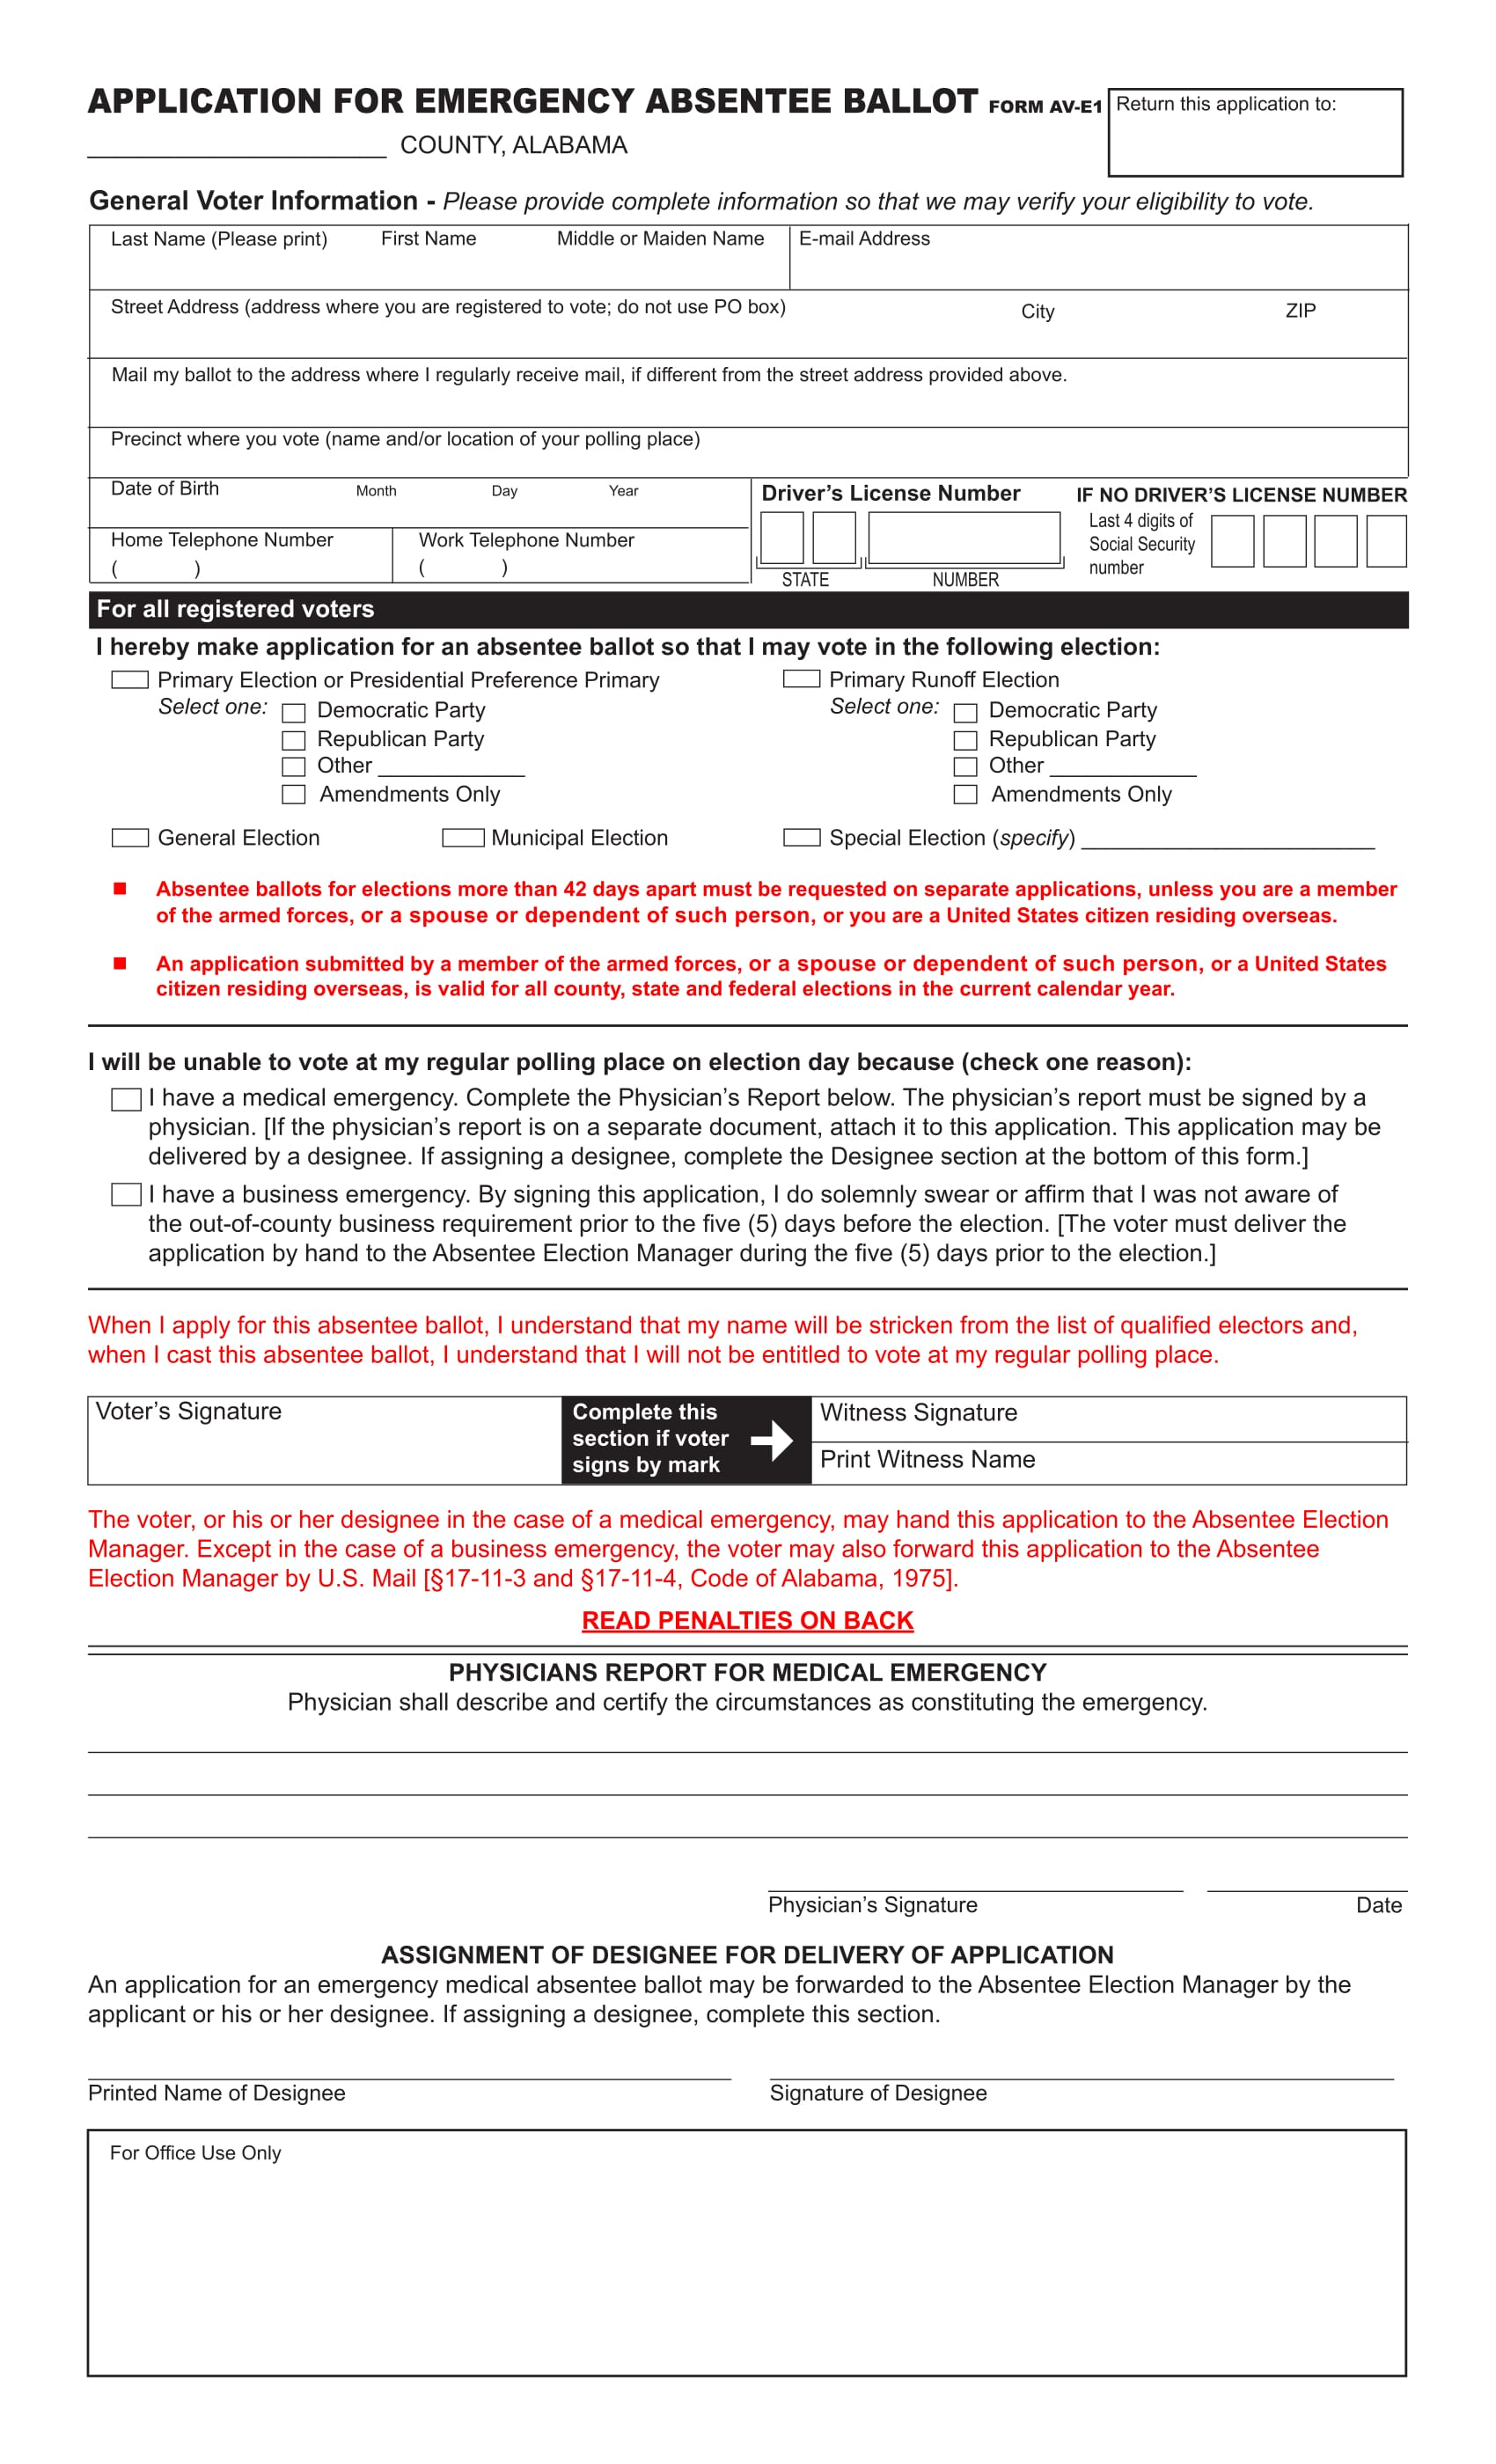 Free Alabama Application for Emergency Absentee Ballot - WikiForm ...